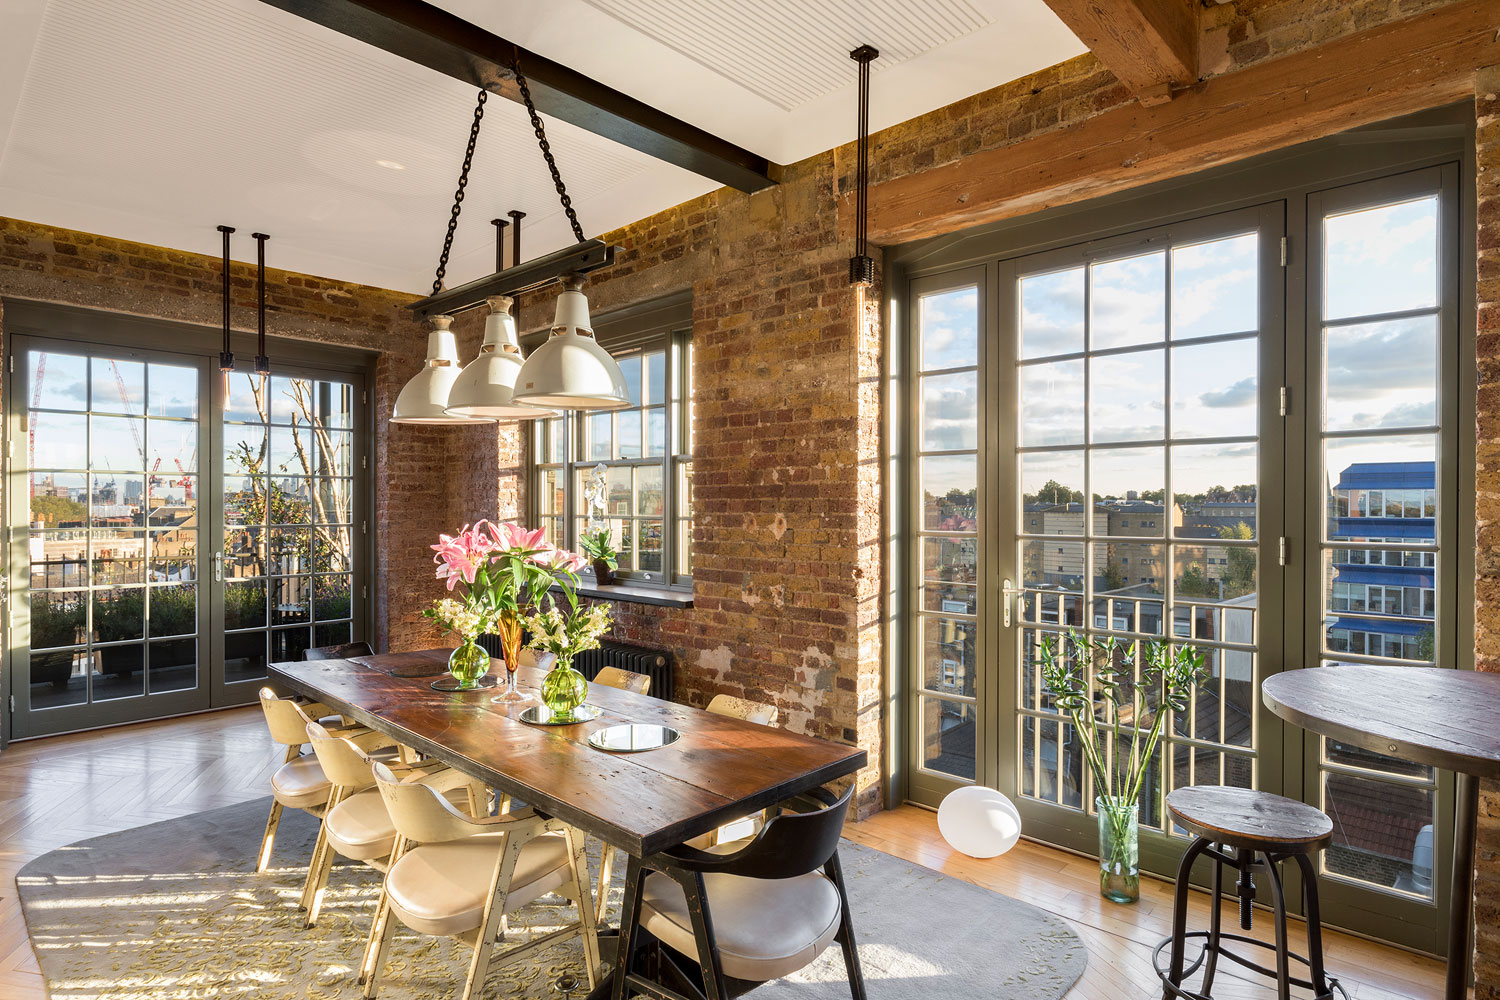 Victorian Chappell Piano Factory Becomes Stylish Loft Apartments 6